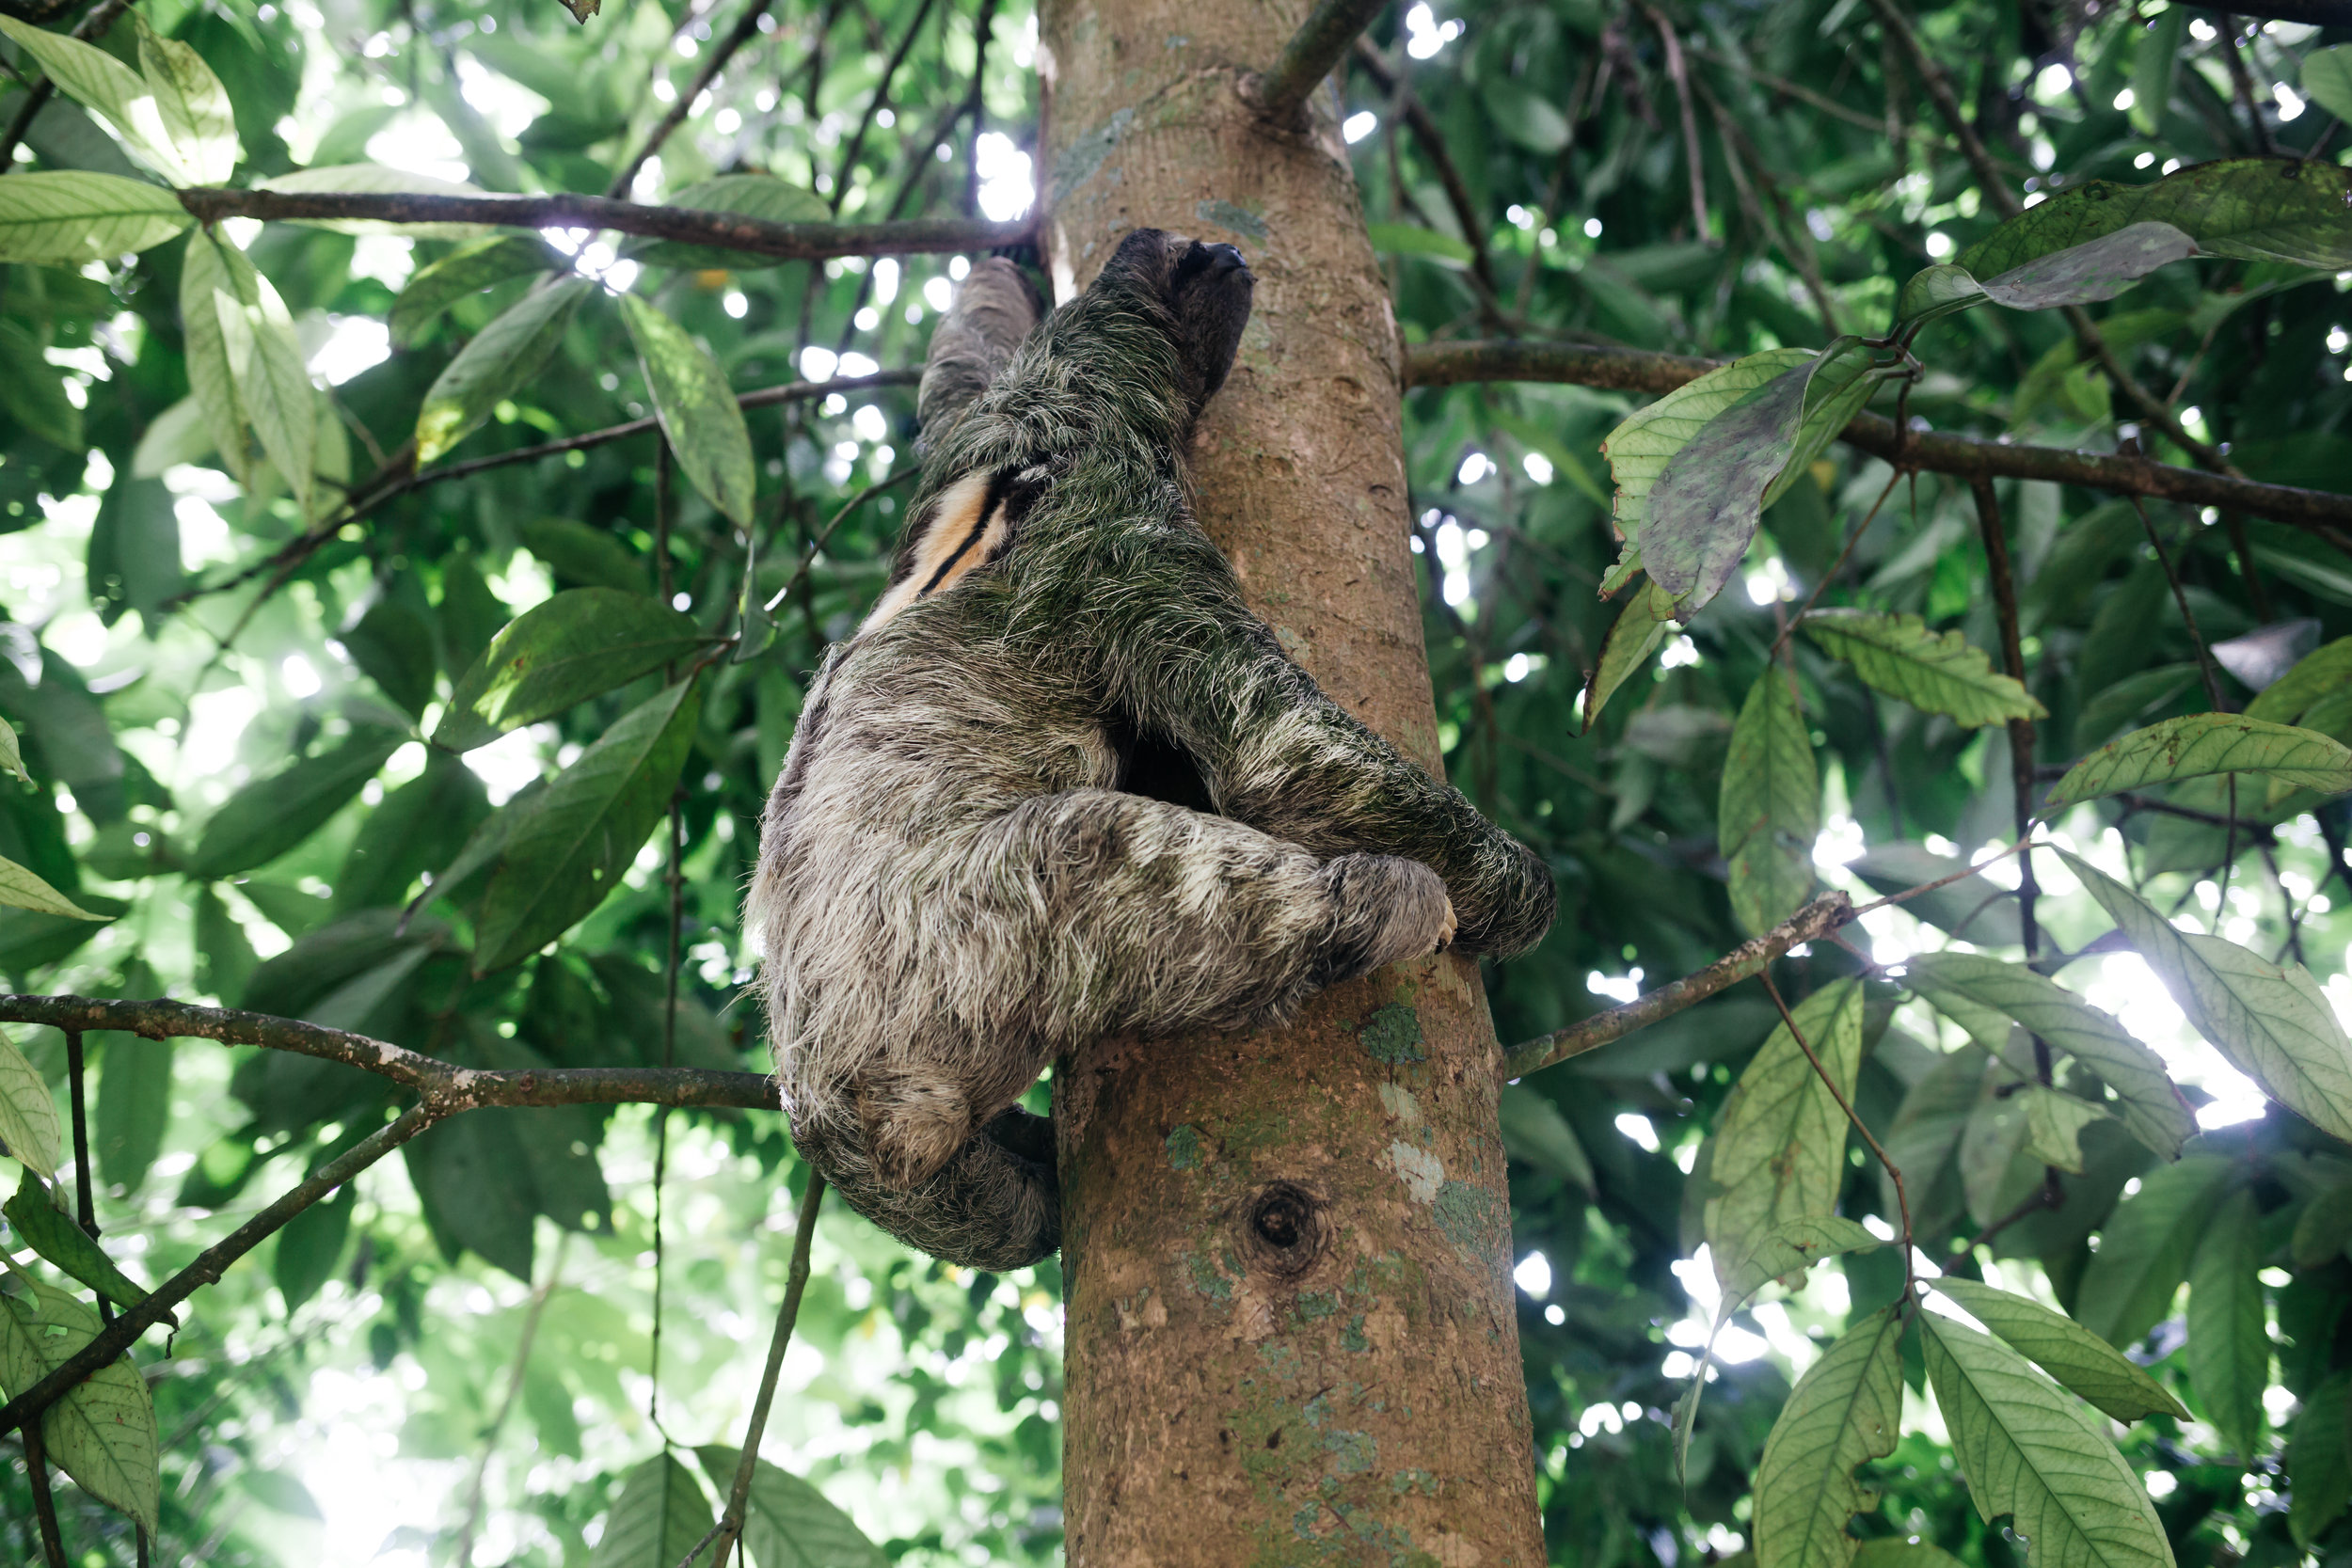 costarica_airbnb_sloth (22 of 49).jpg